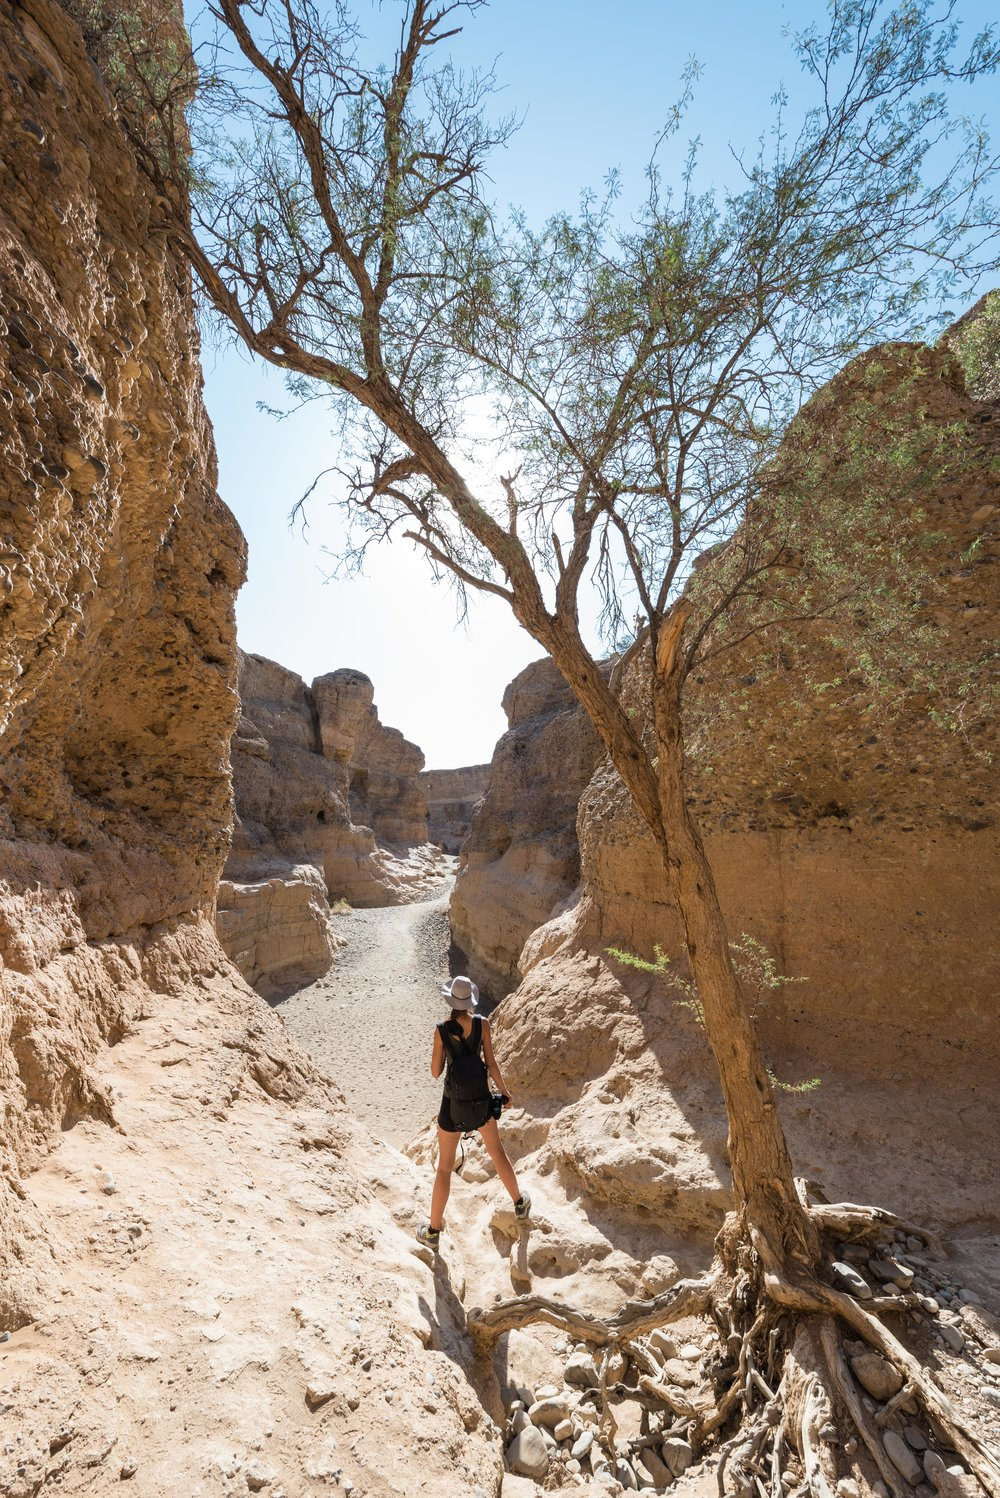 The view entering the lower part of the canyon.